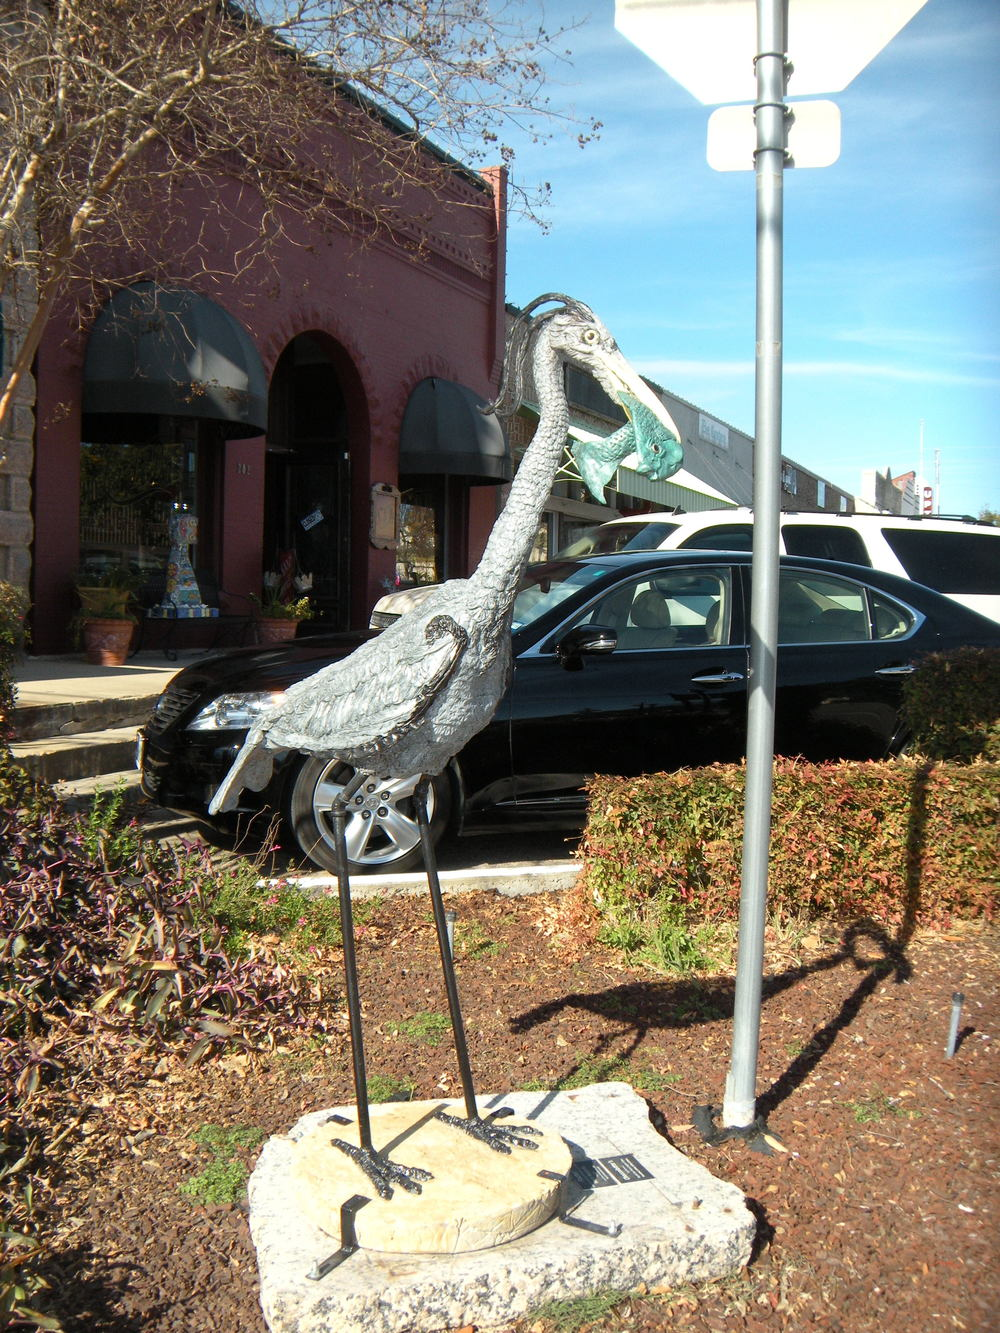 This is in Marble Falls, where there are interesting statues on every corner of Main Street.